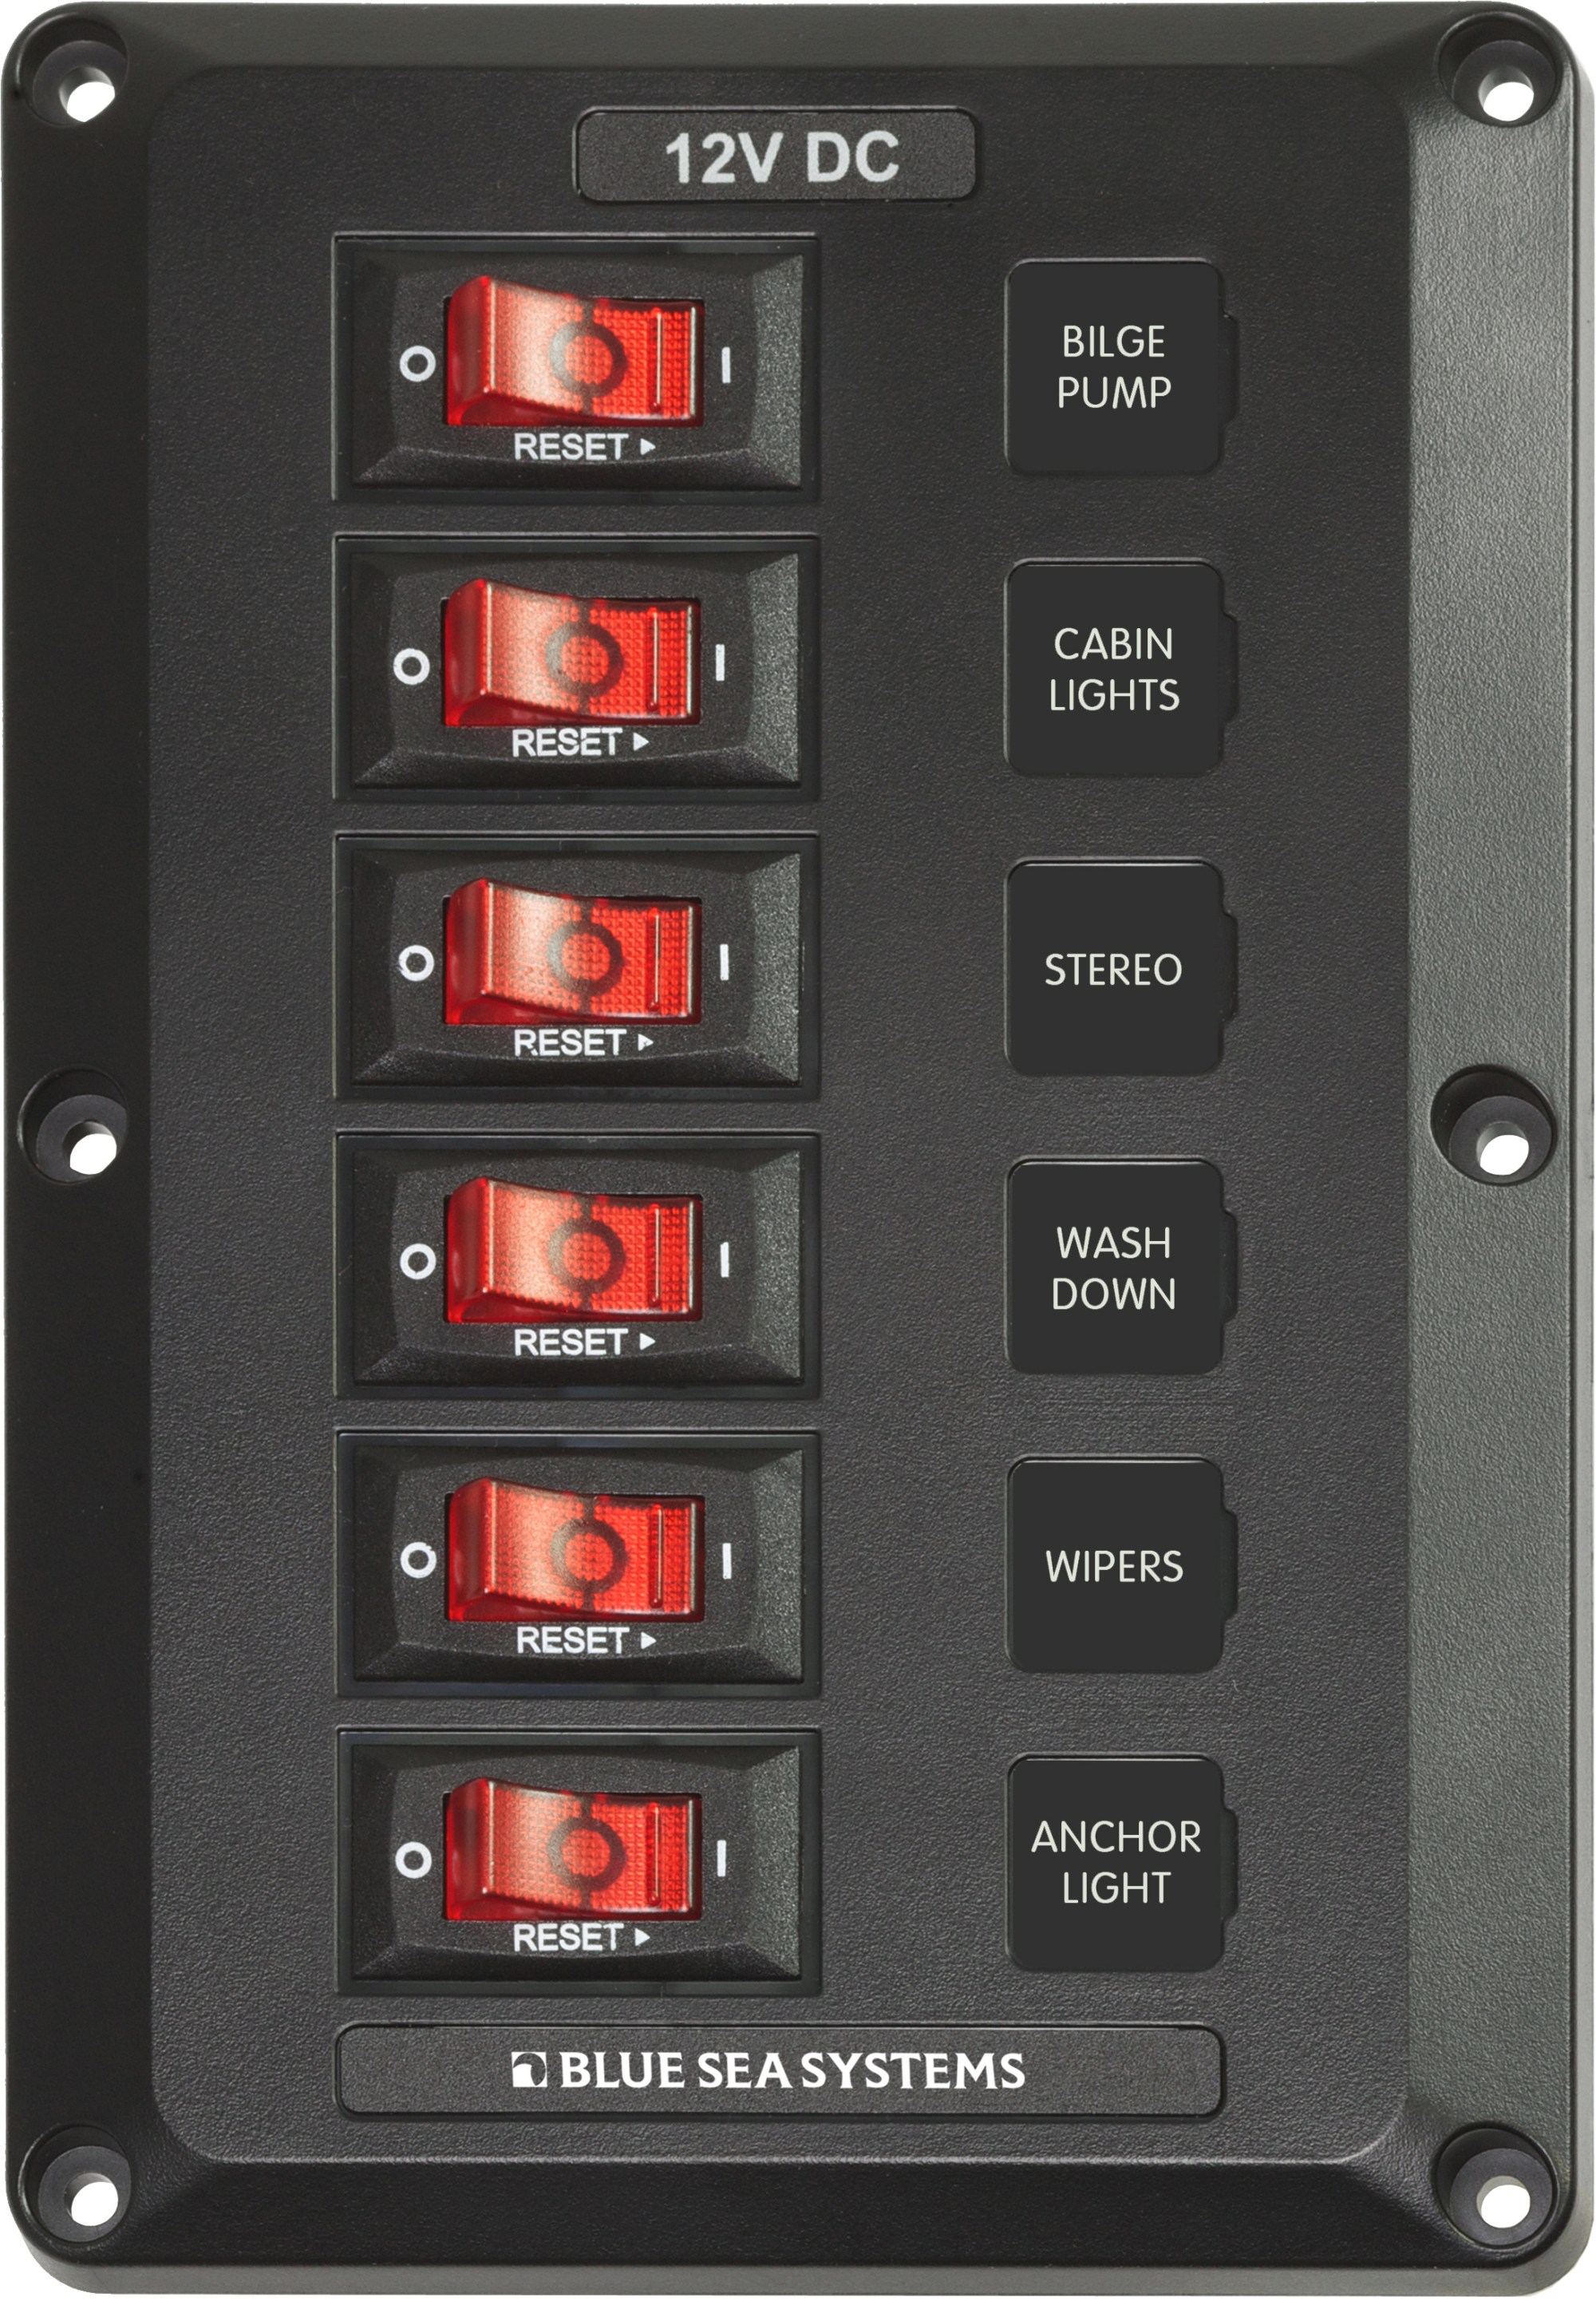 hight resolution of 6 position belowdeck circuit breaker panel blue sea systems blue sea fuse block marine switch fuse box